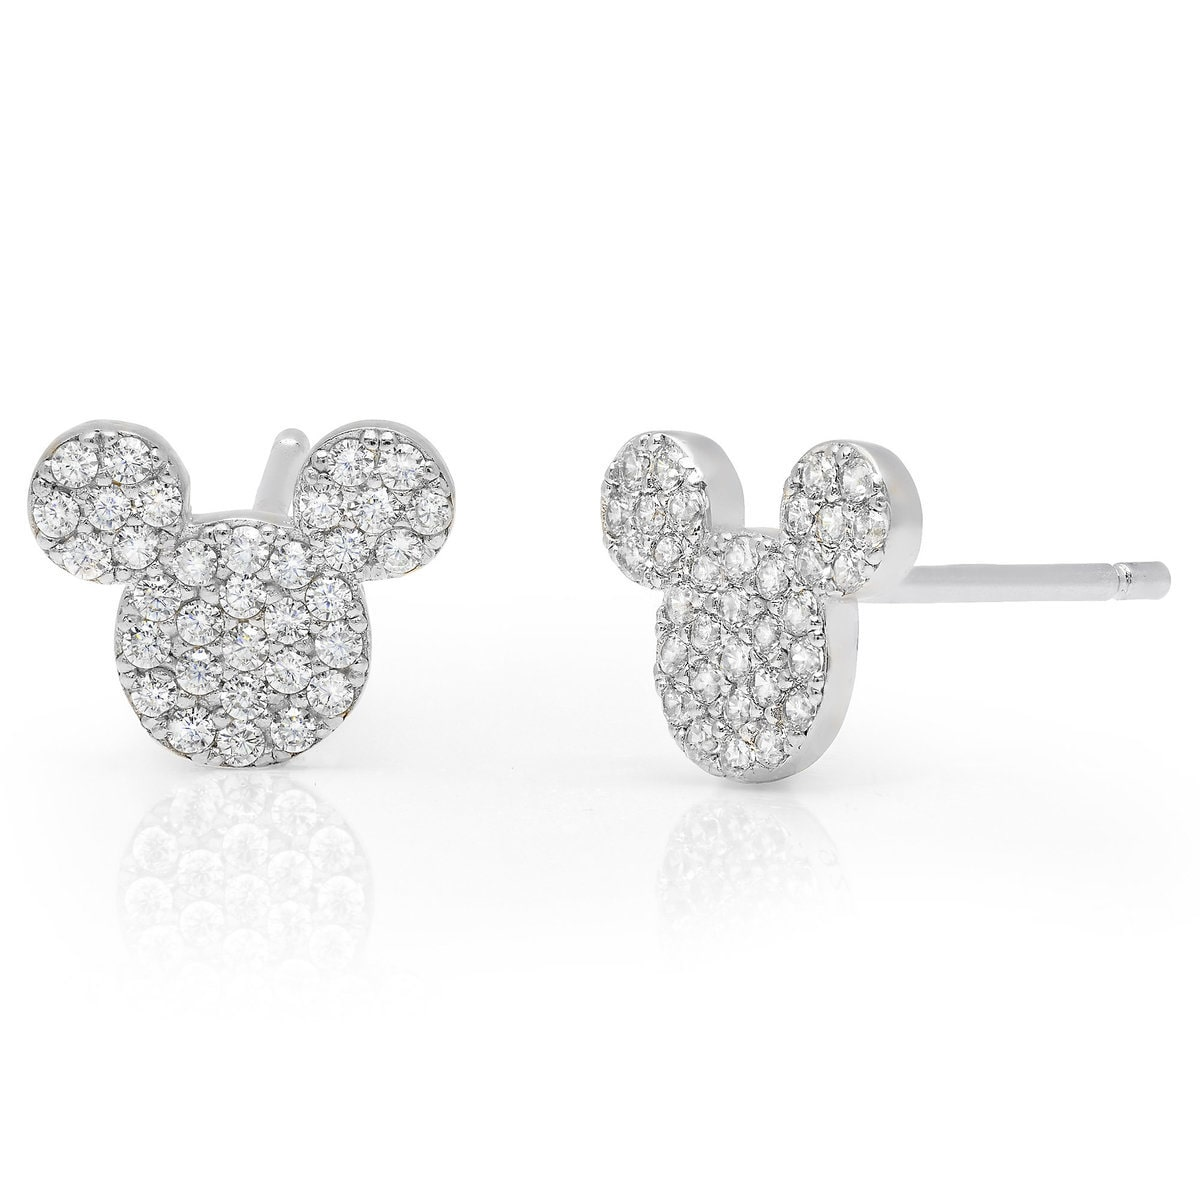 earrings kendra stud scott tessa nordstrom main sparkly s stone